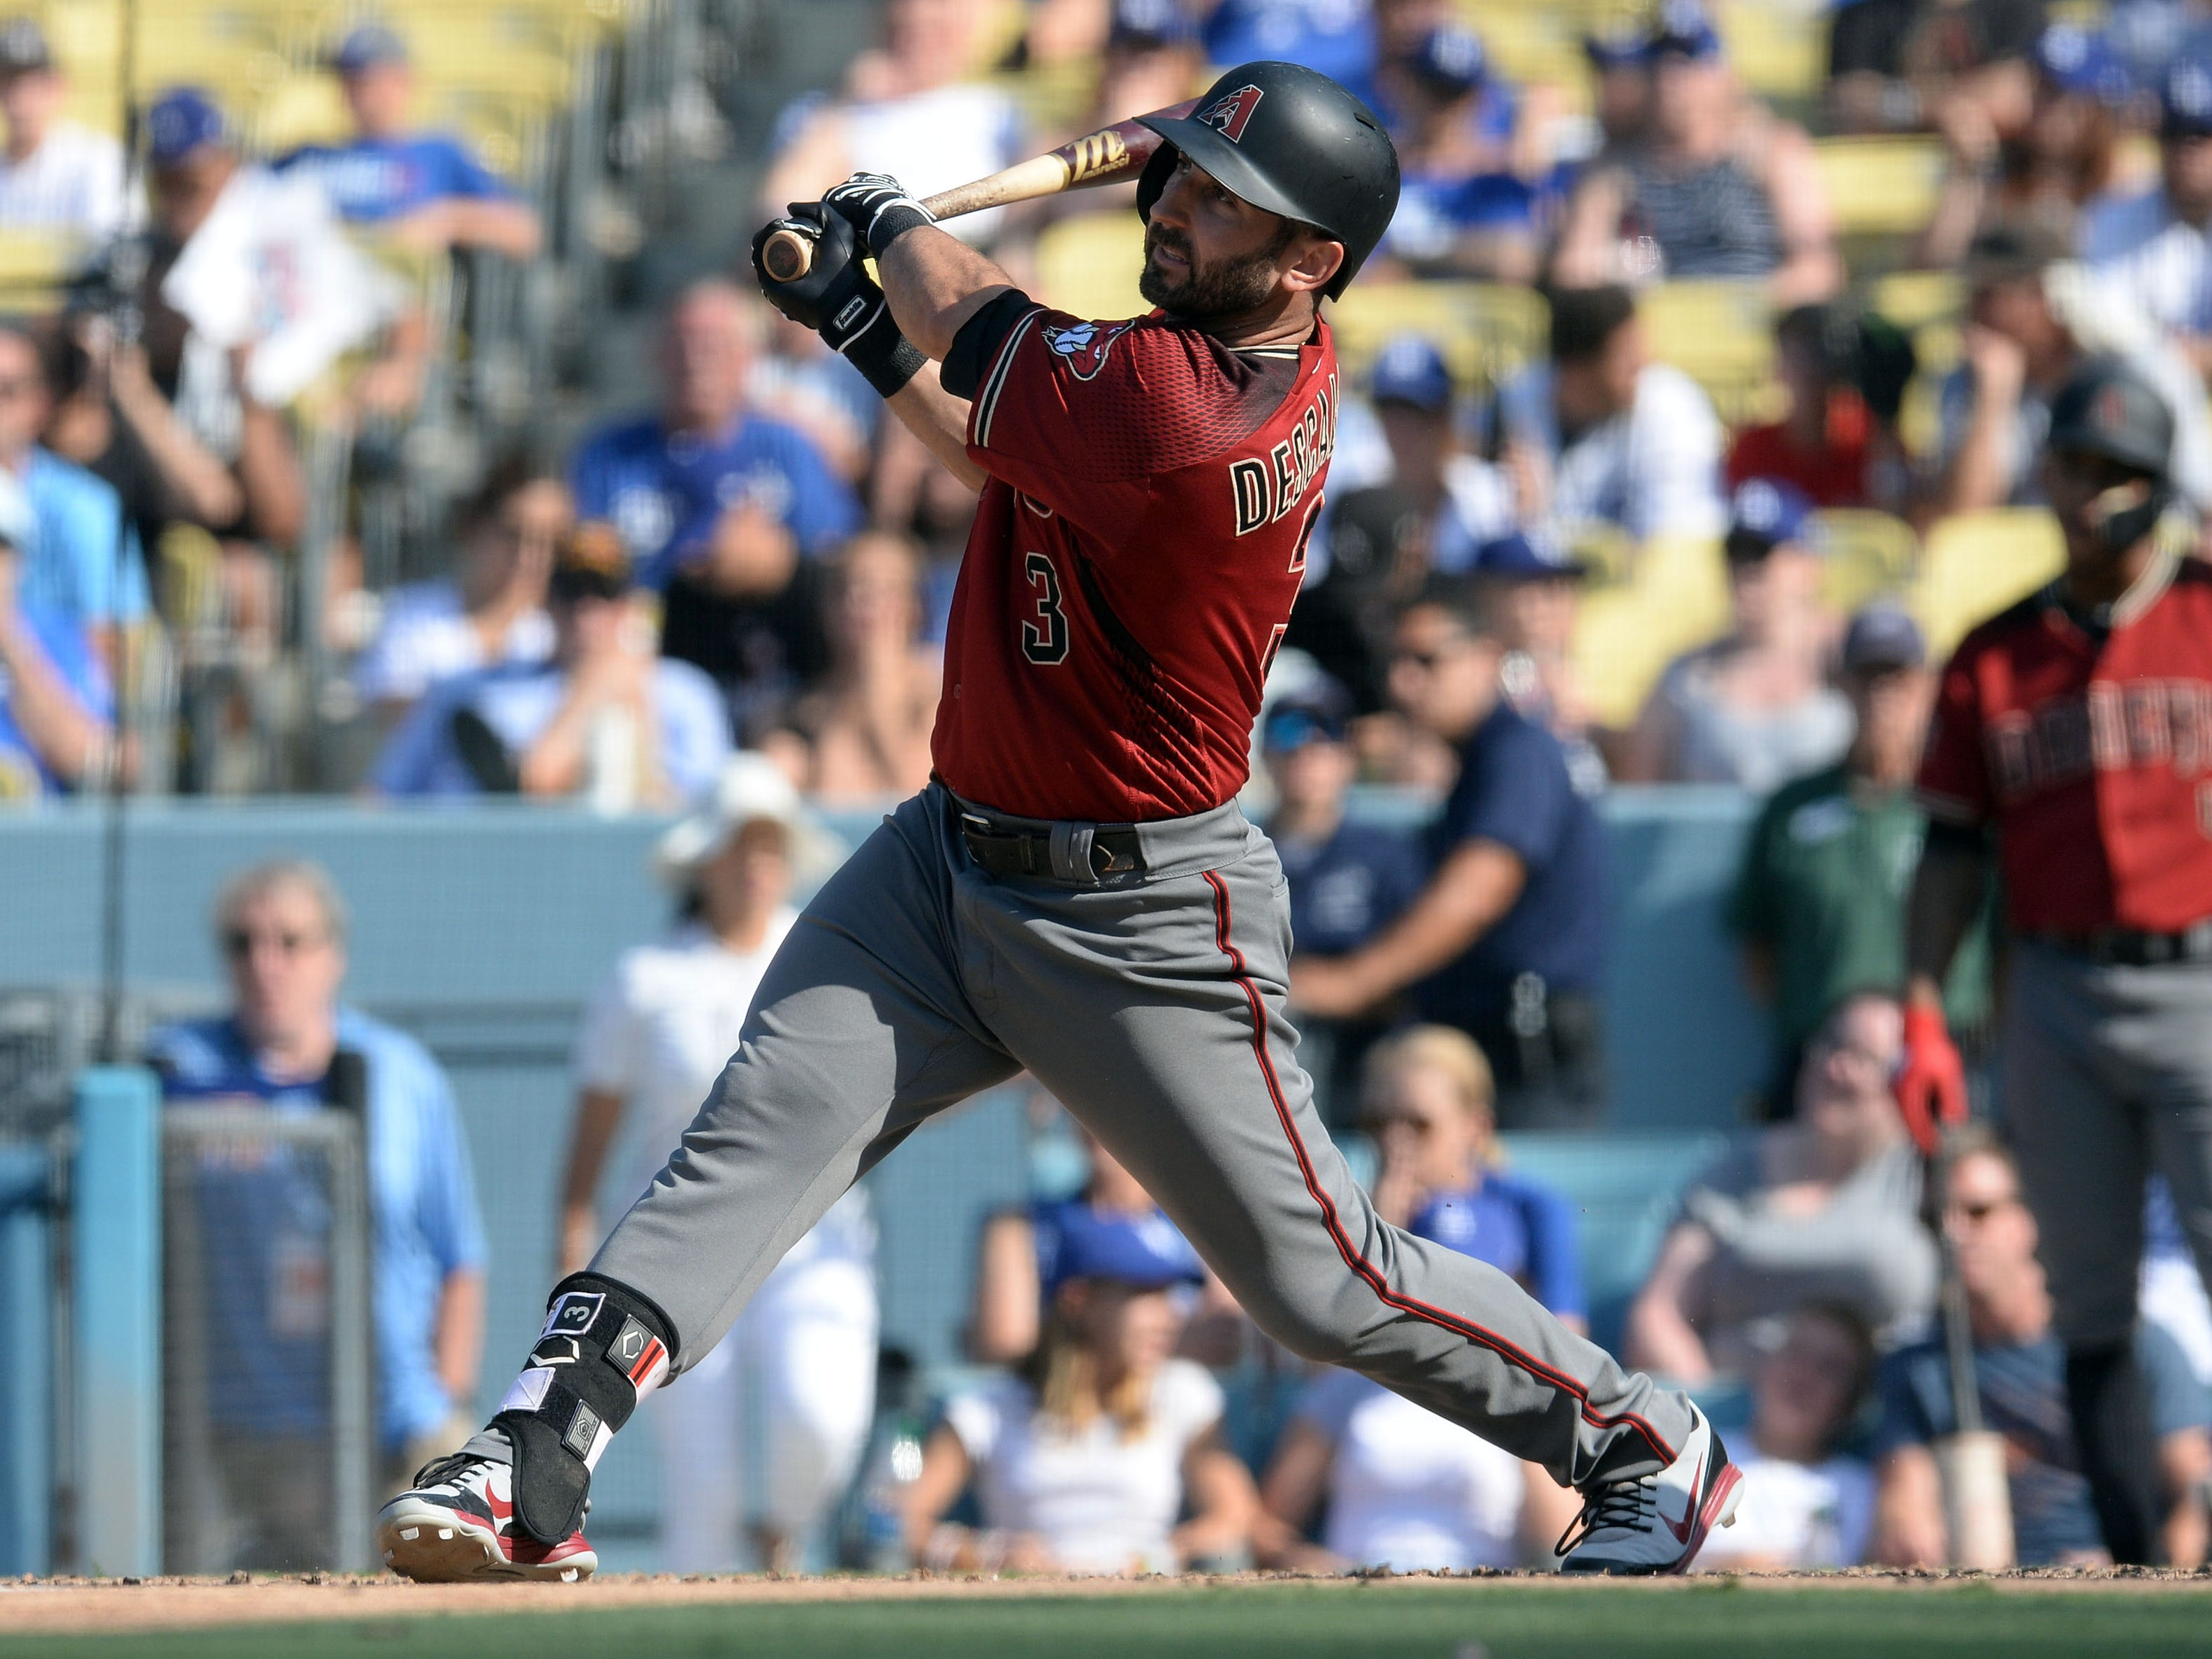 September 2, 2018; Los Angeles, CA, USA; Arizona Diamondbacks second baseman Daniel Descalso (3) hits a solo home run against the Los Angeles Dodgers in the ninth inning at Dodger Stadium. Mandatory Credit: Gary A. Vasquez-USA TODAY Sports